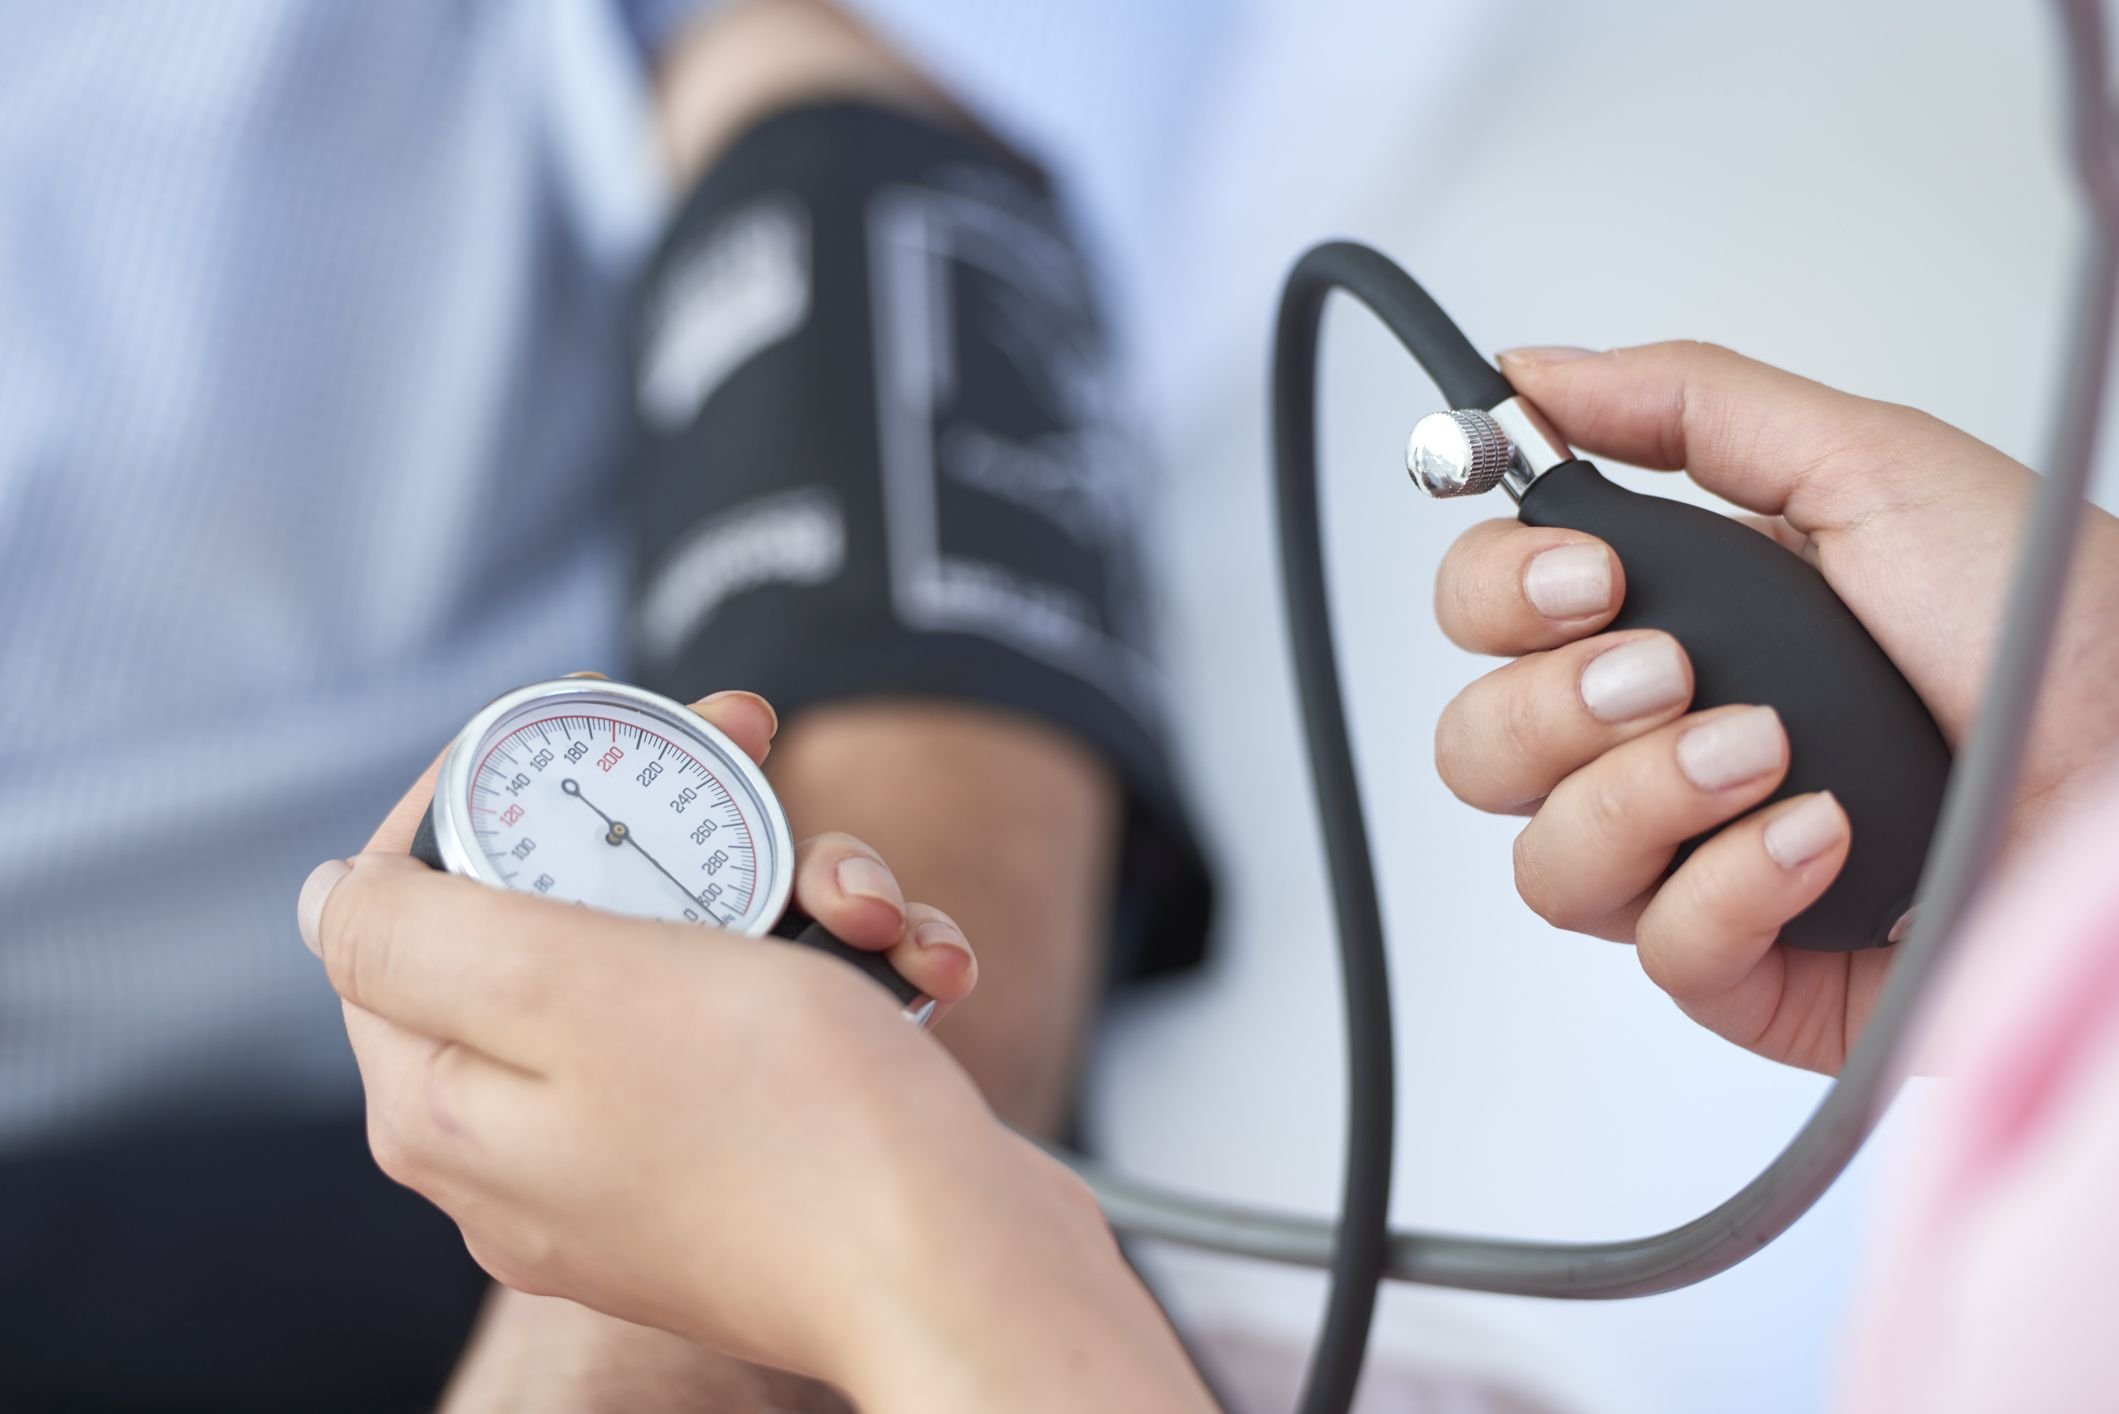 Your Blood Pressure Reading May Not Be Correct, According to a Doctor